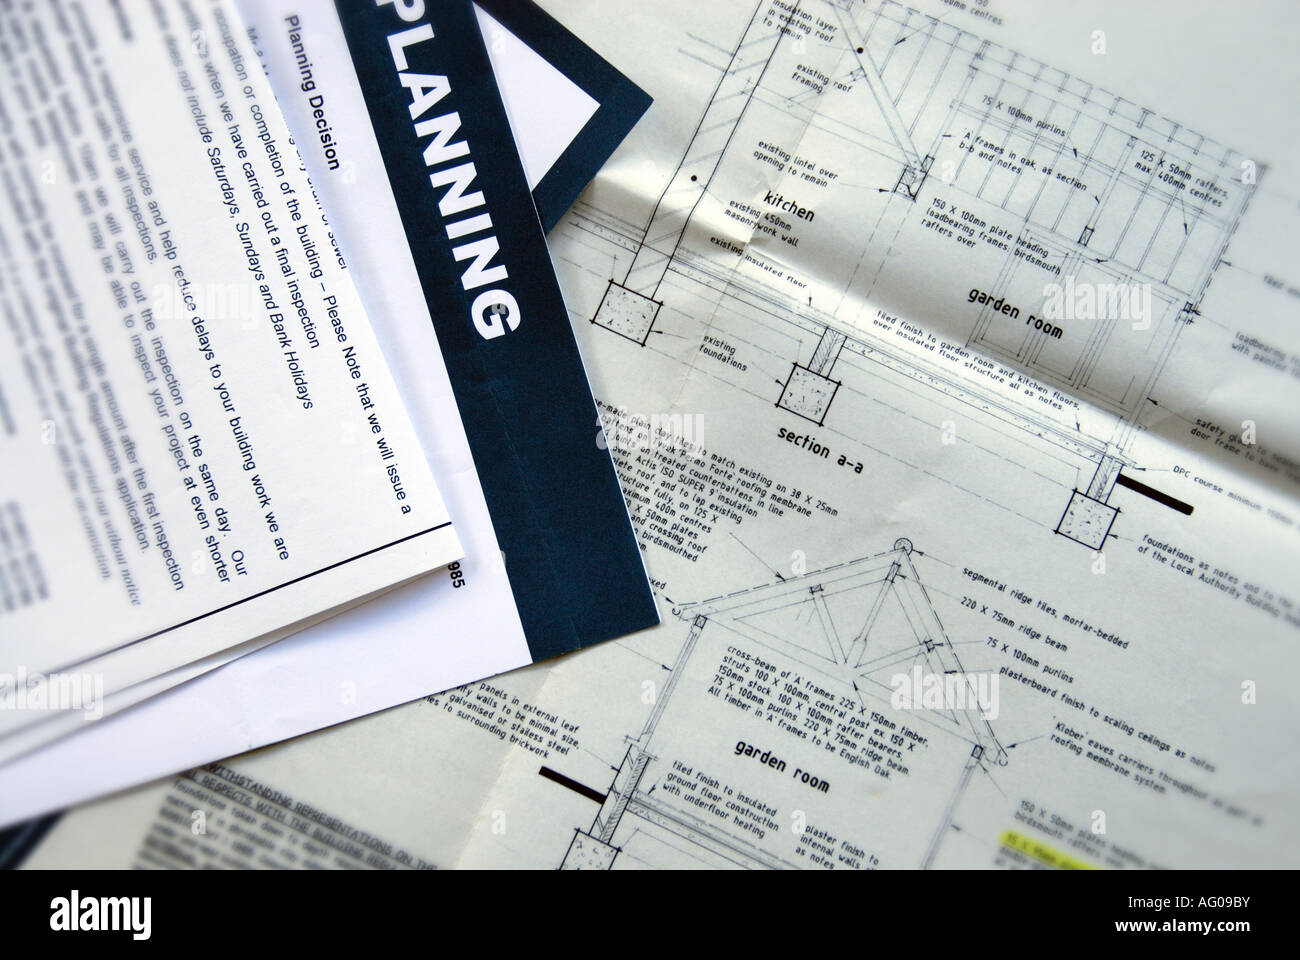 planning application documents - Stock Image